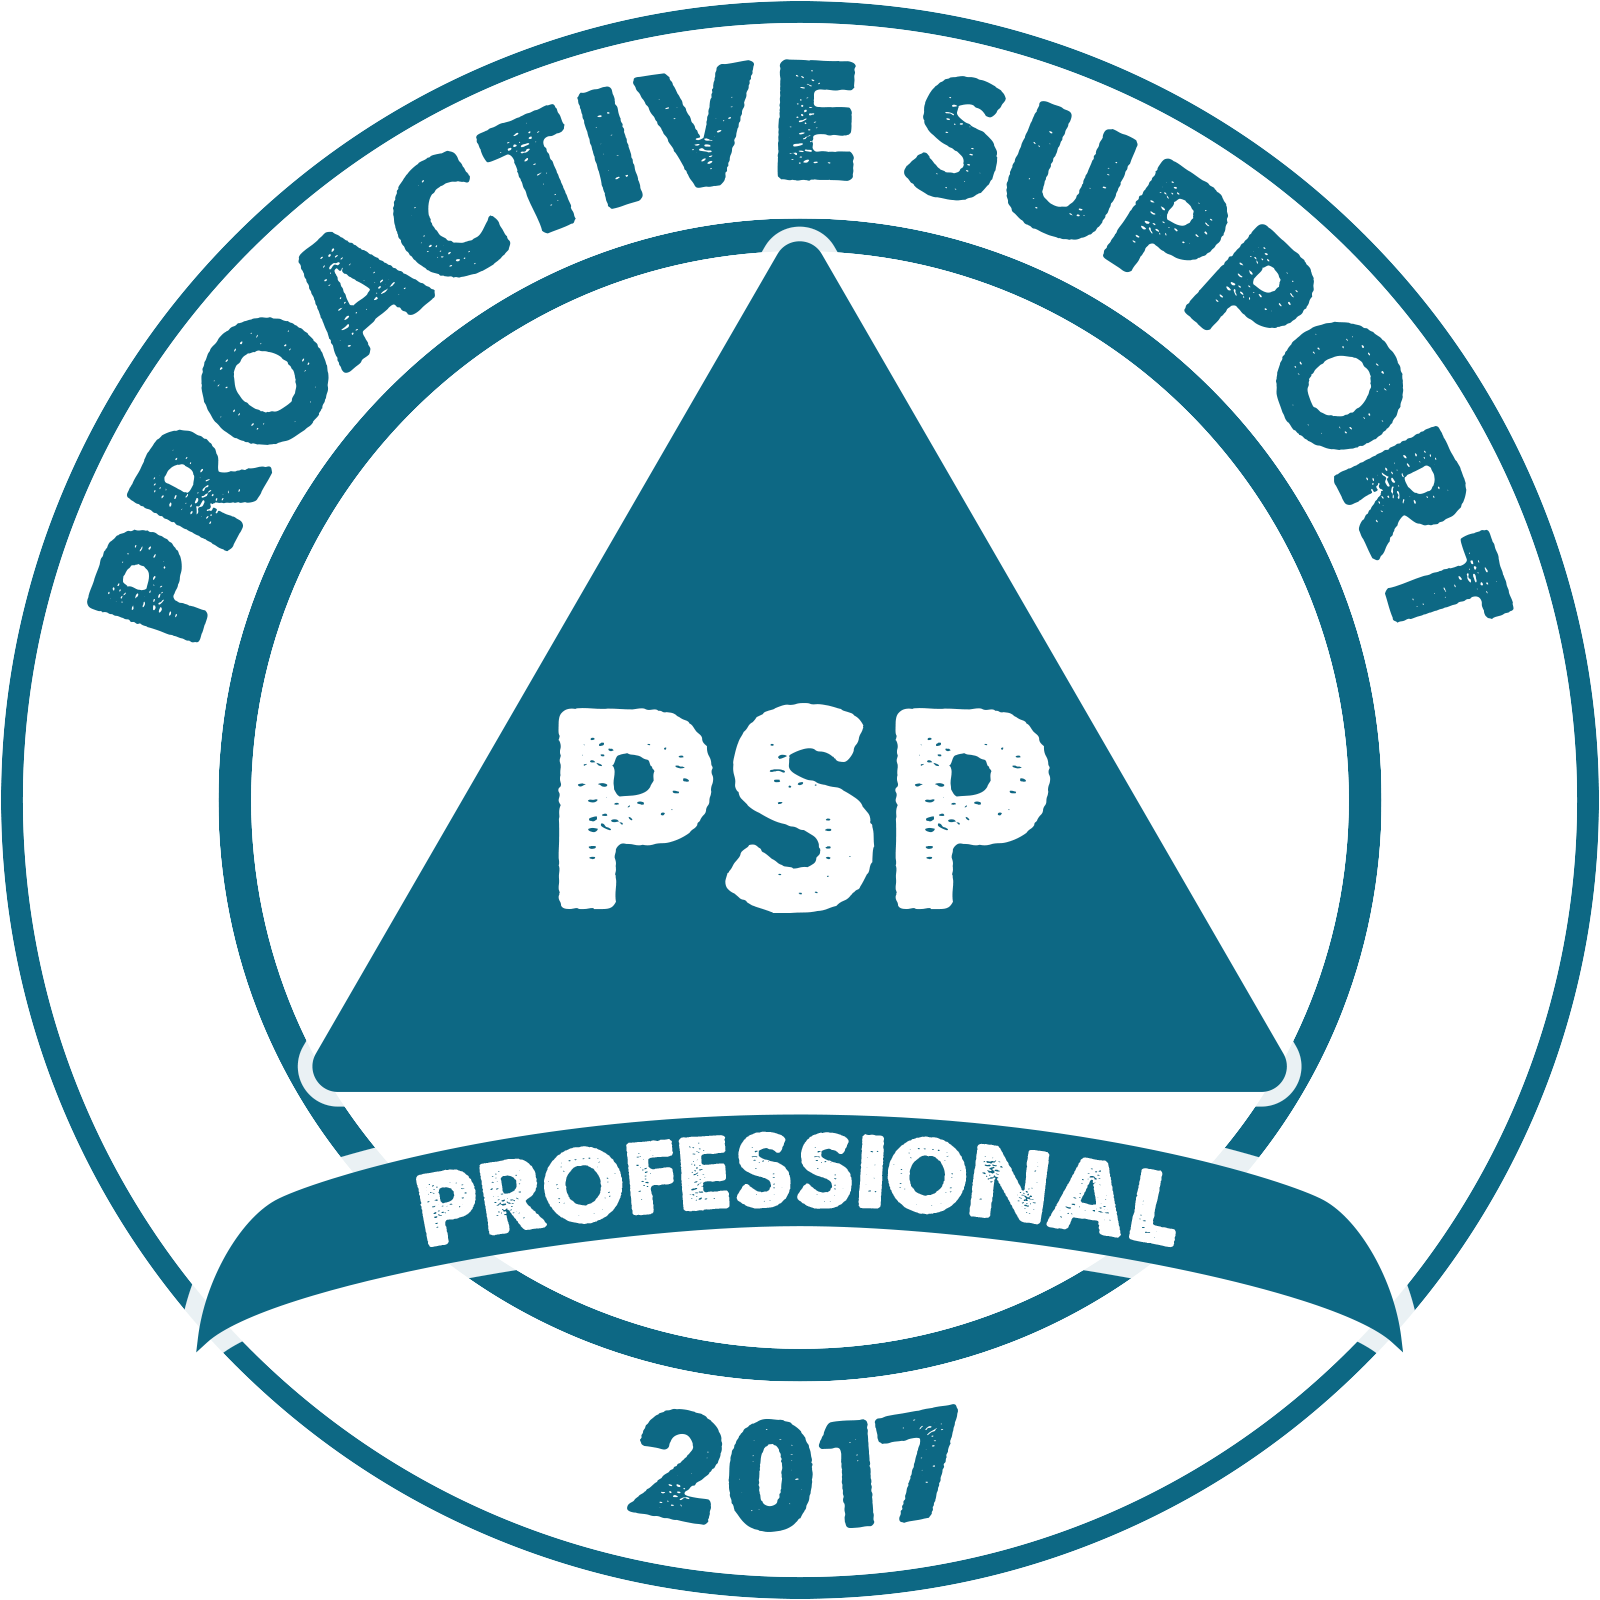 Proactive Support Professional